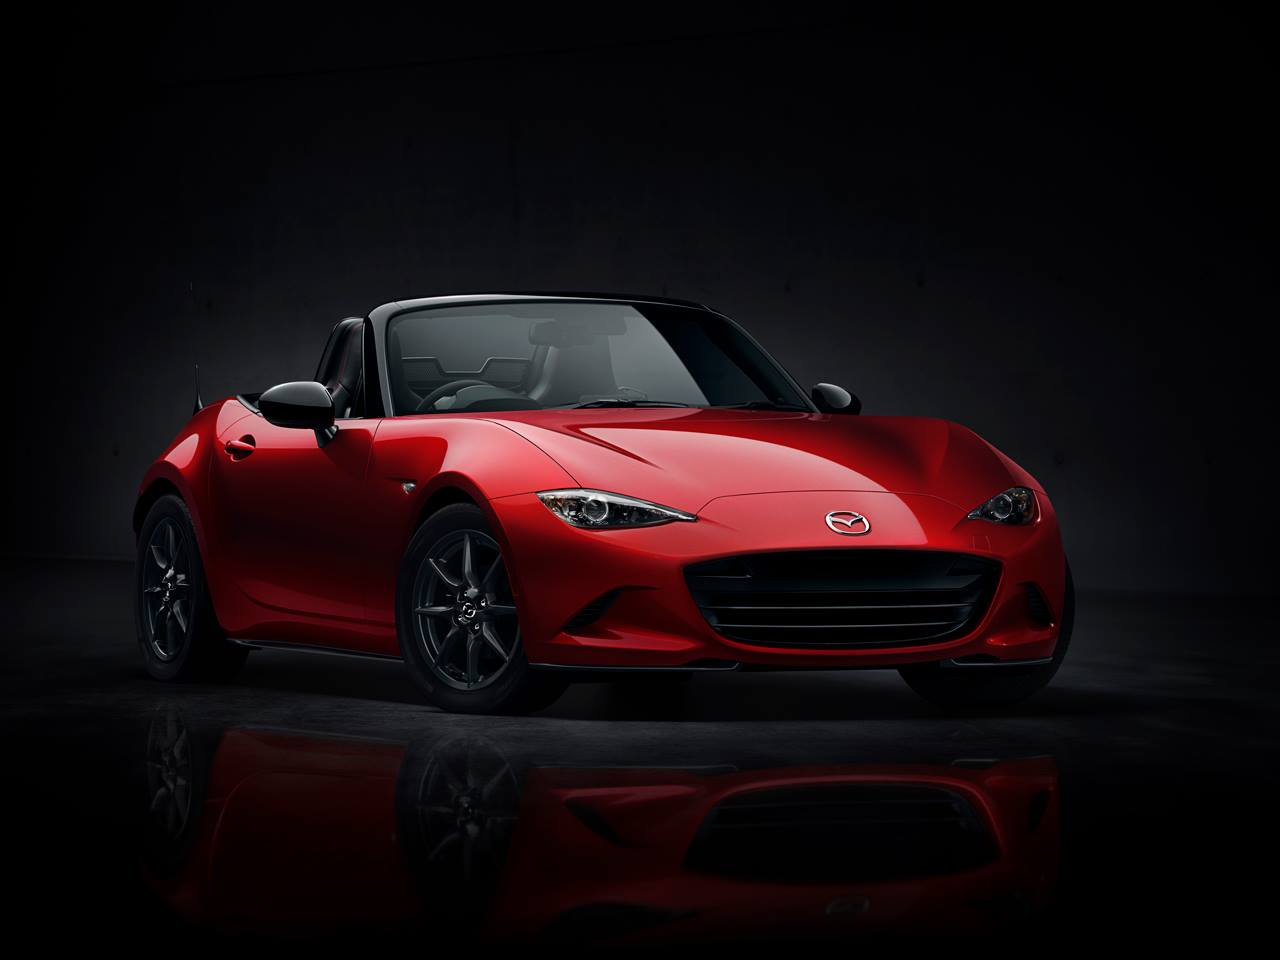 http://www.automotiveaddicts.com/wp-content/uploads/2014/09/2016-mazda-mx5-reveal-2.jpg